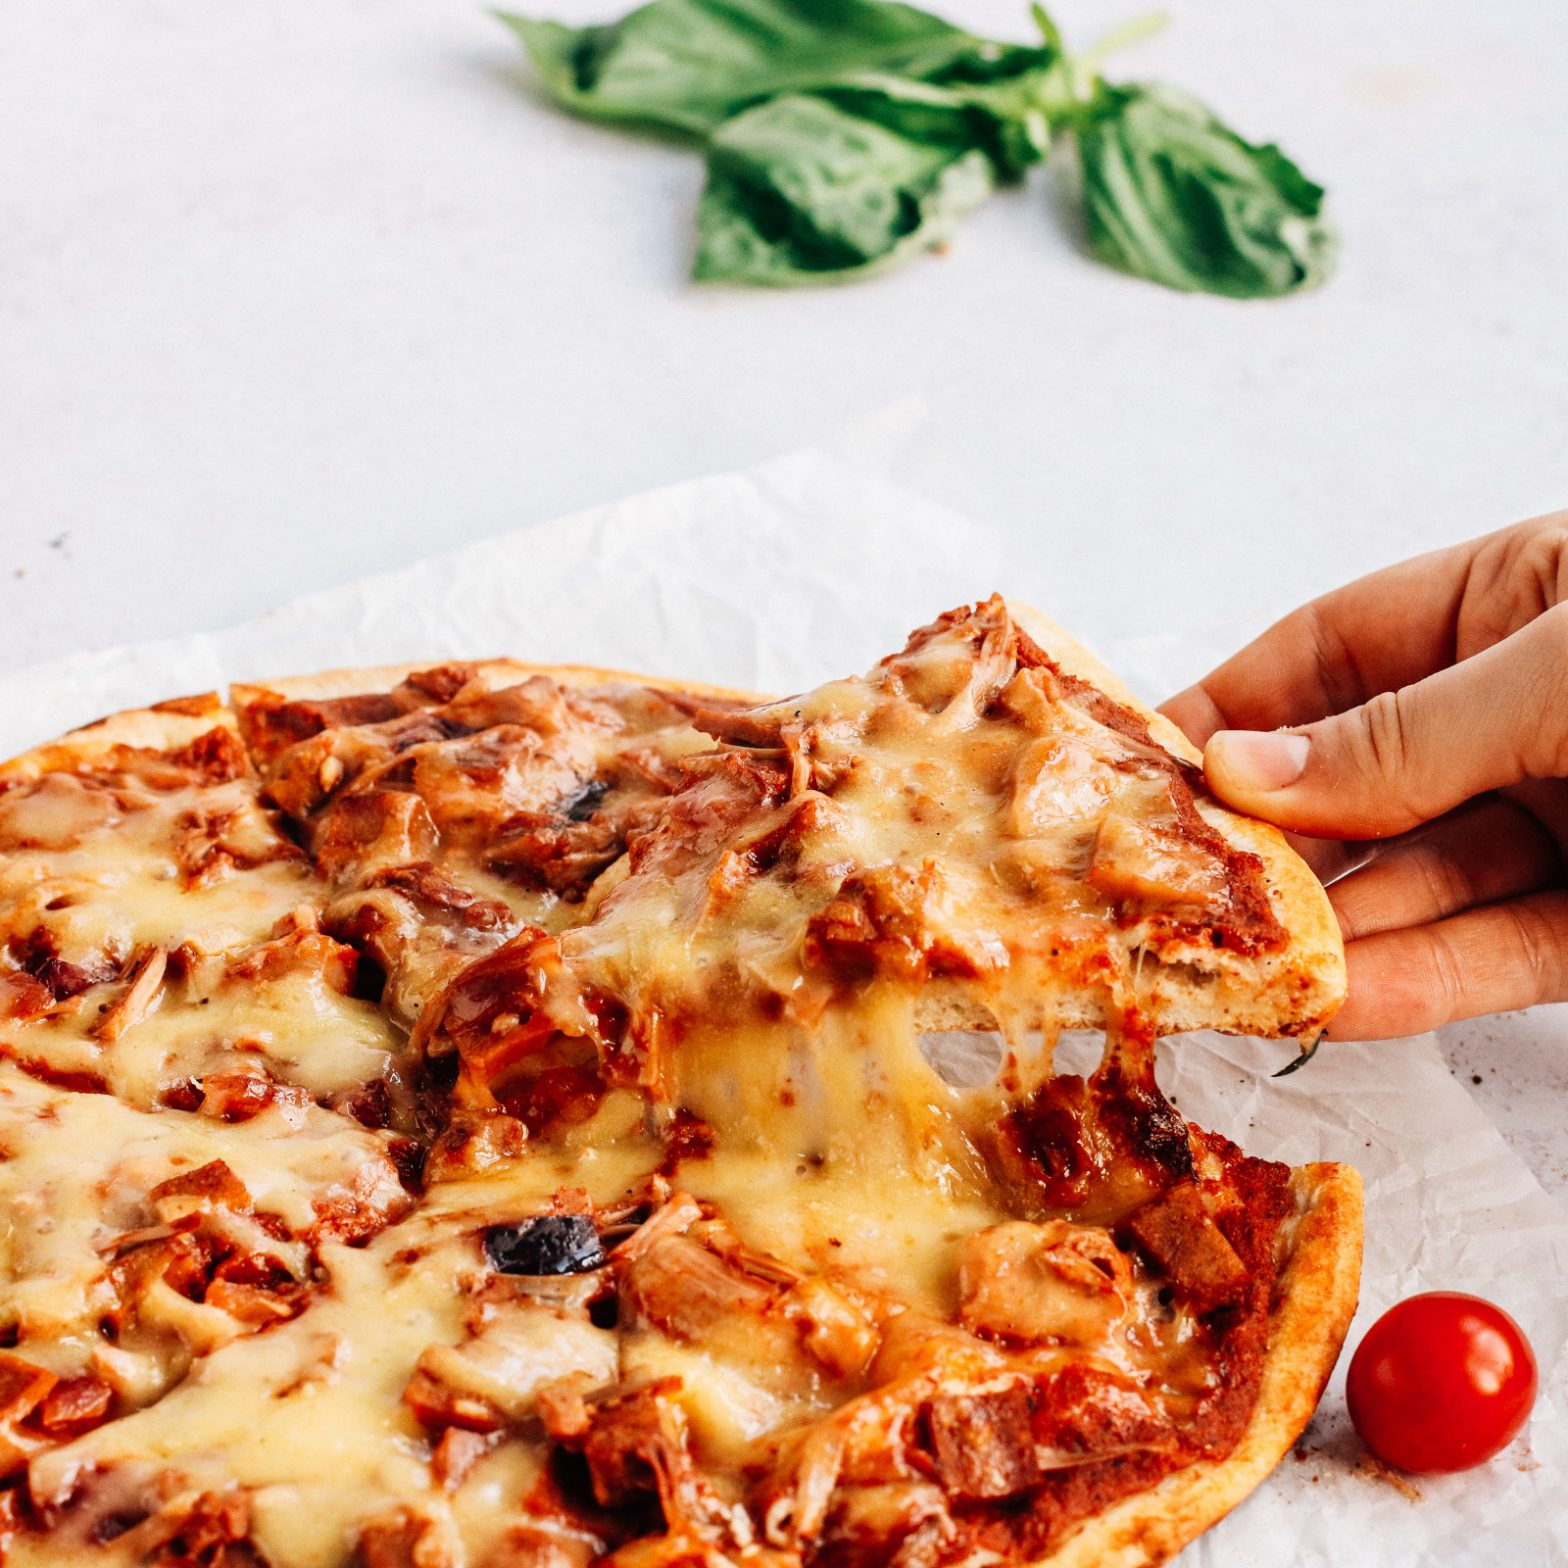 The Meatless Feast Pizza